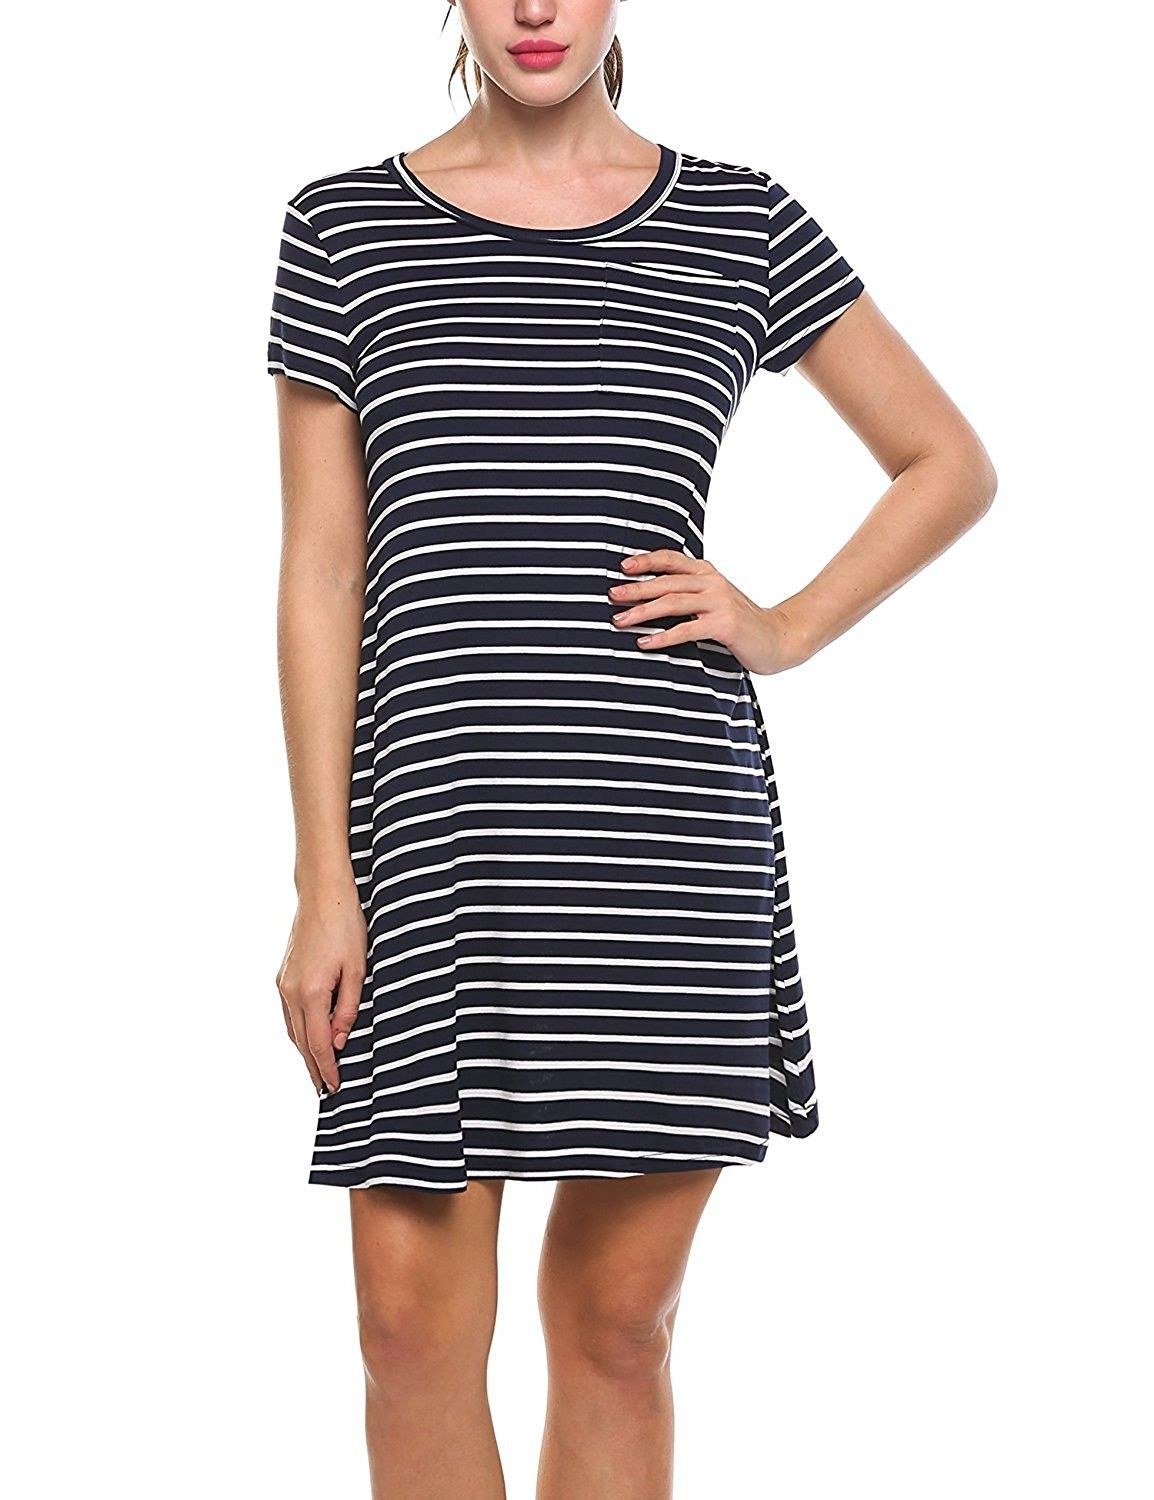 430a182c38 Women s Tunic Swing T-Shirt Dress Short Sleeve Pocket Striped Tunic ...